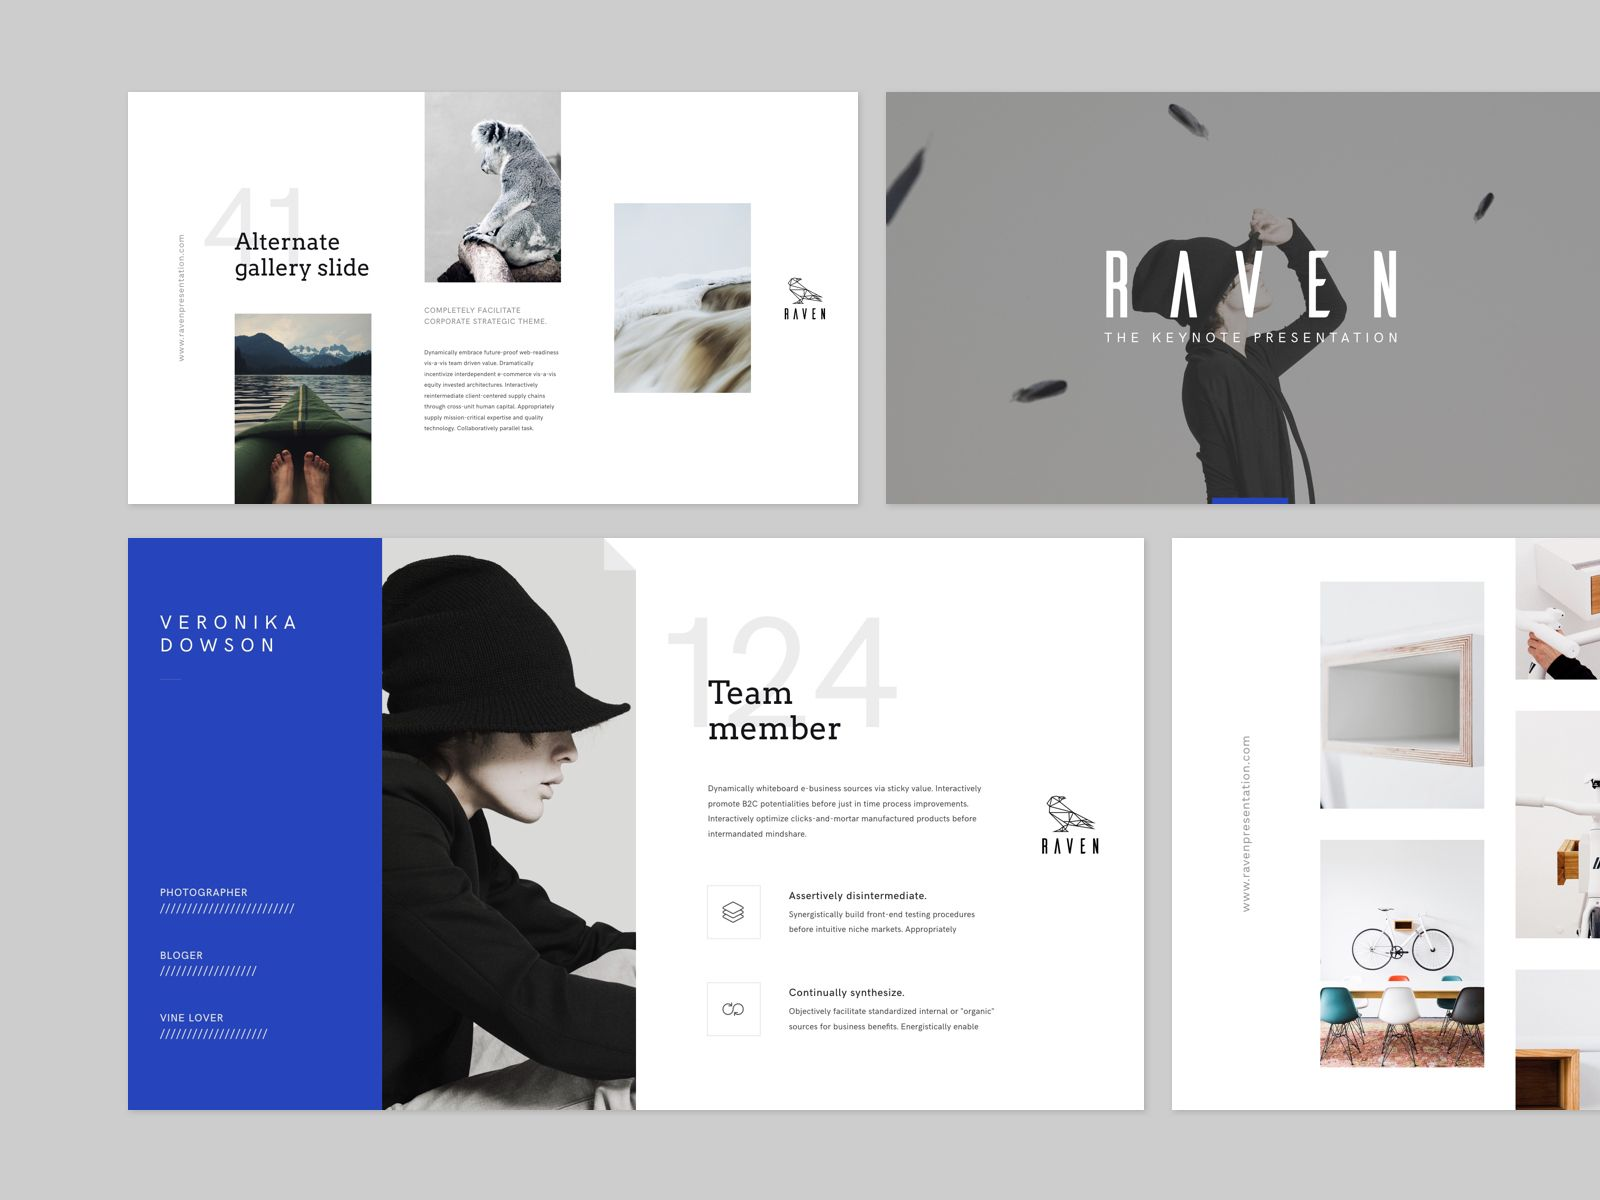 raven keynote presentation templategoashape on @creativemarket, Presentation templates